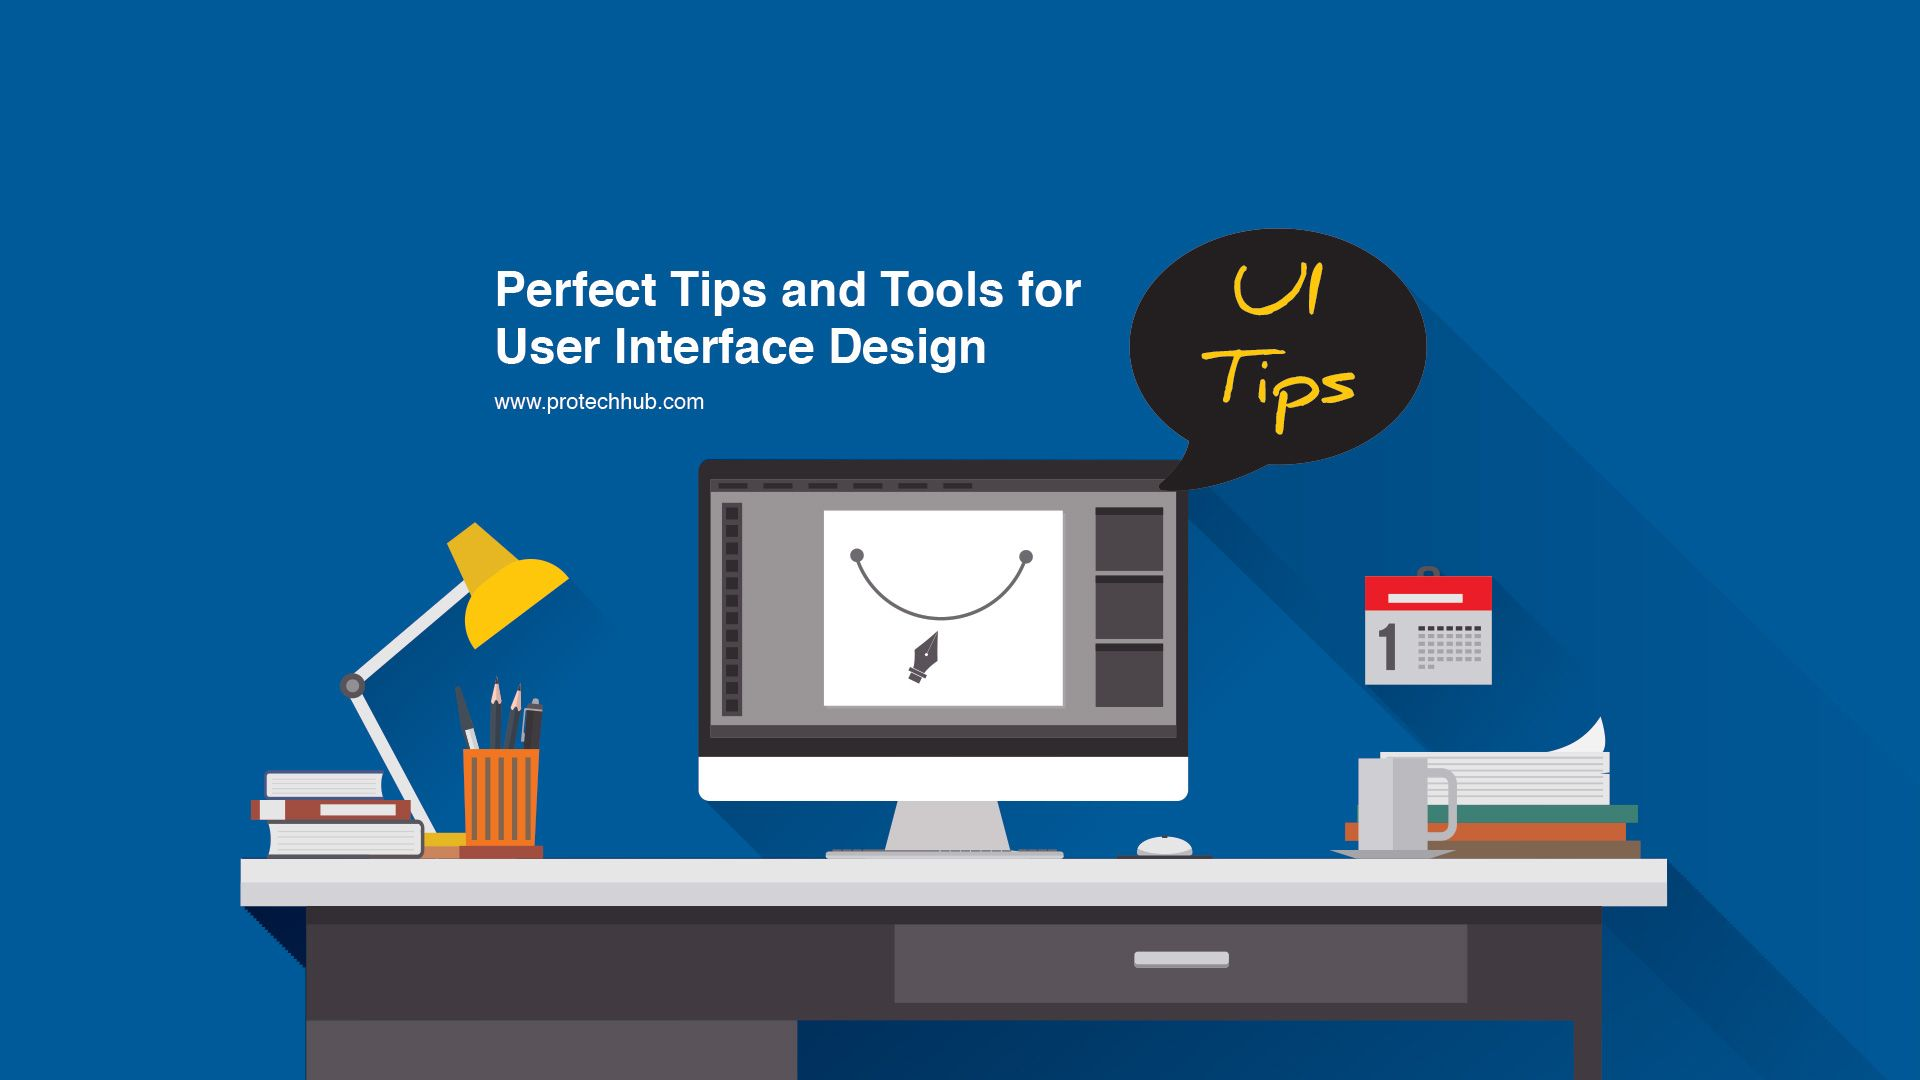 When You Think Of Designing The Perfect User Interface Design Many Things Come To Mind